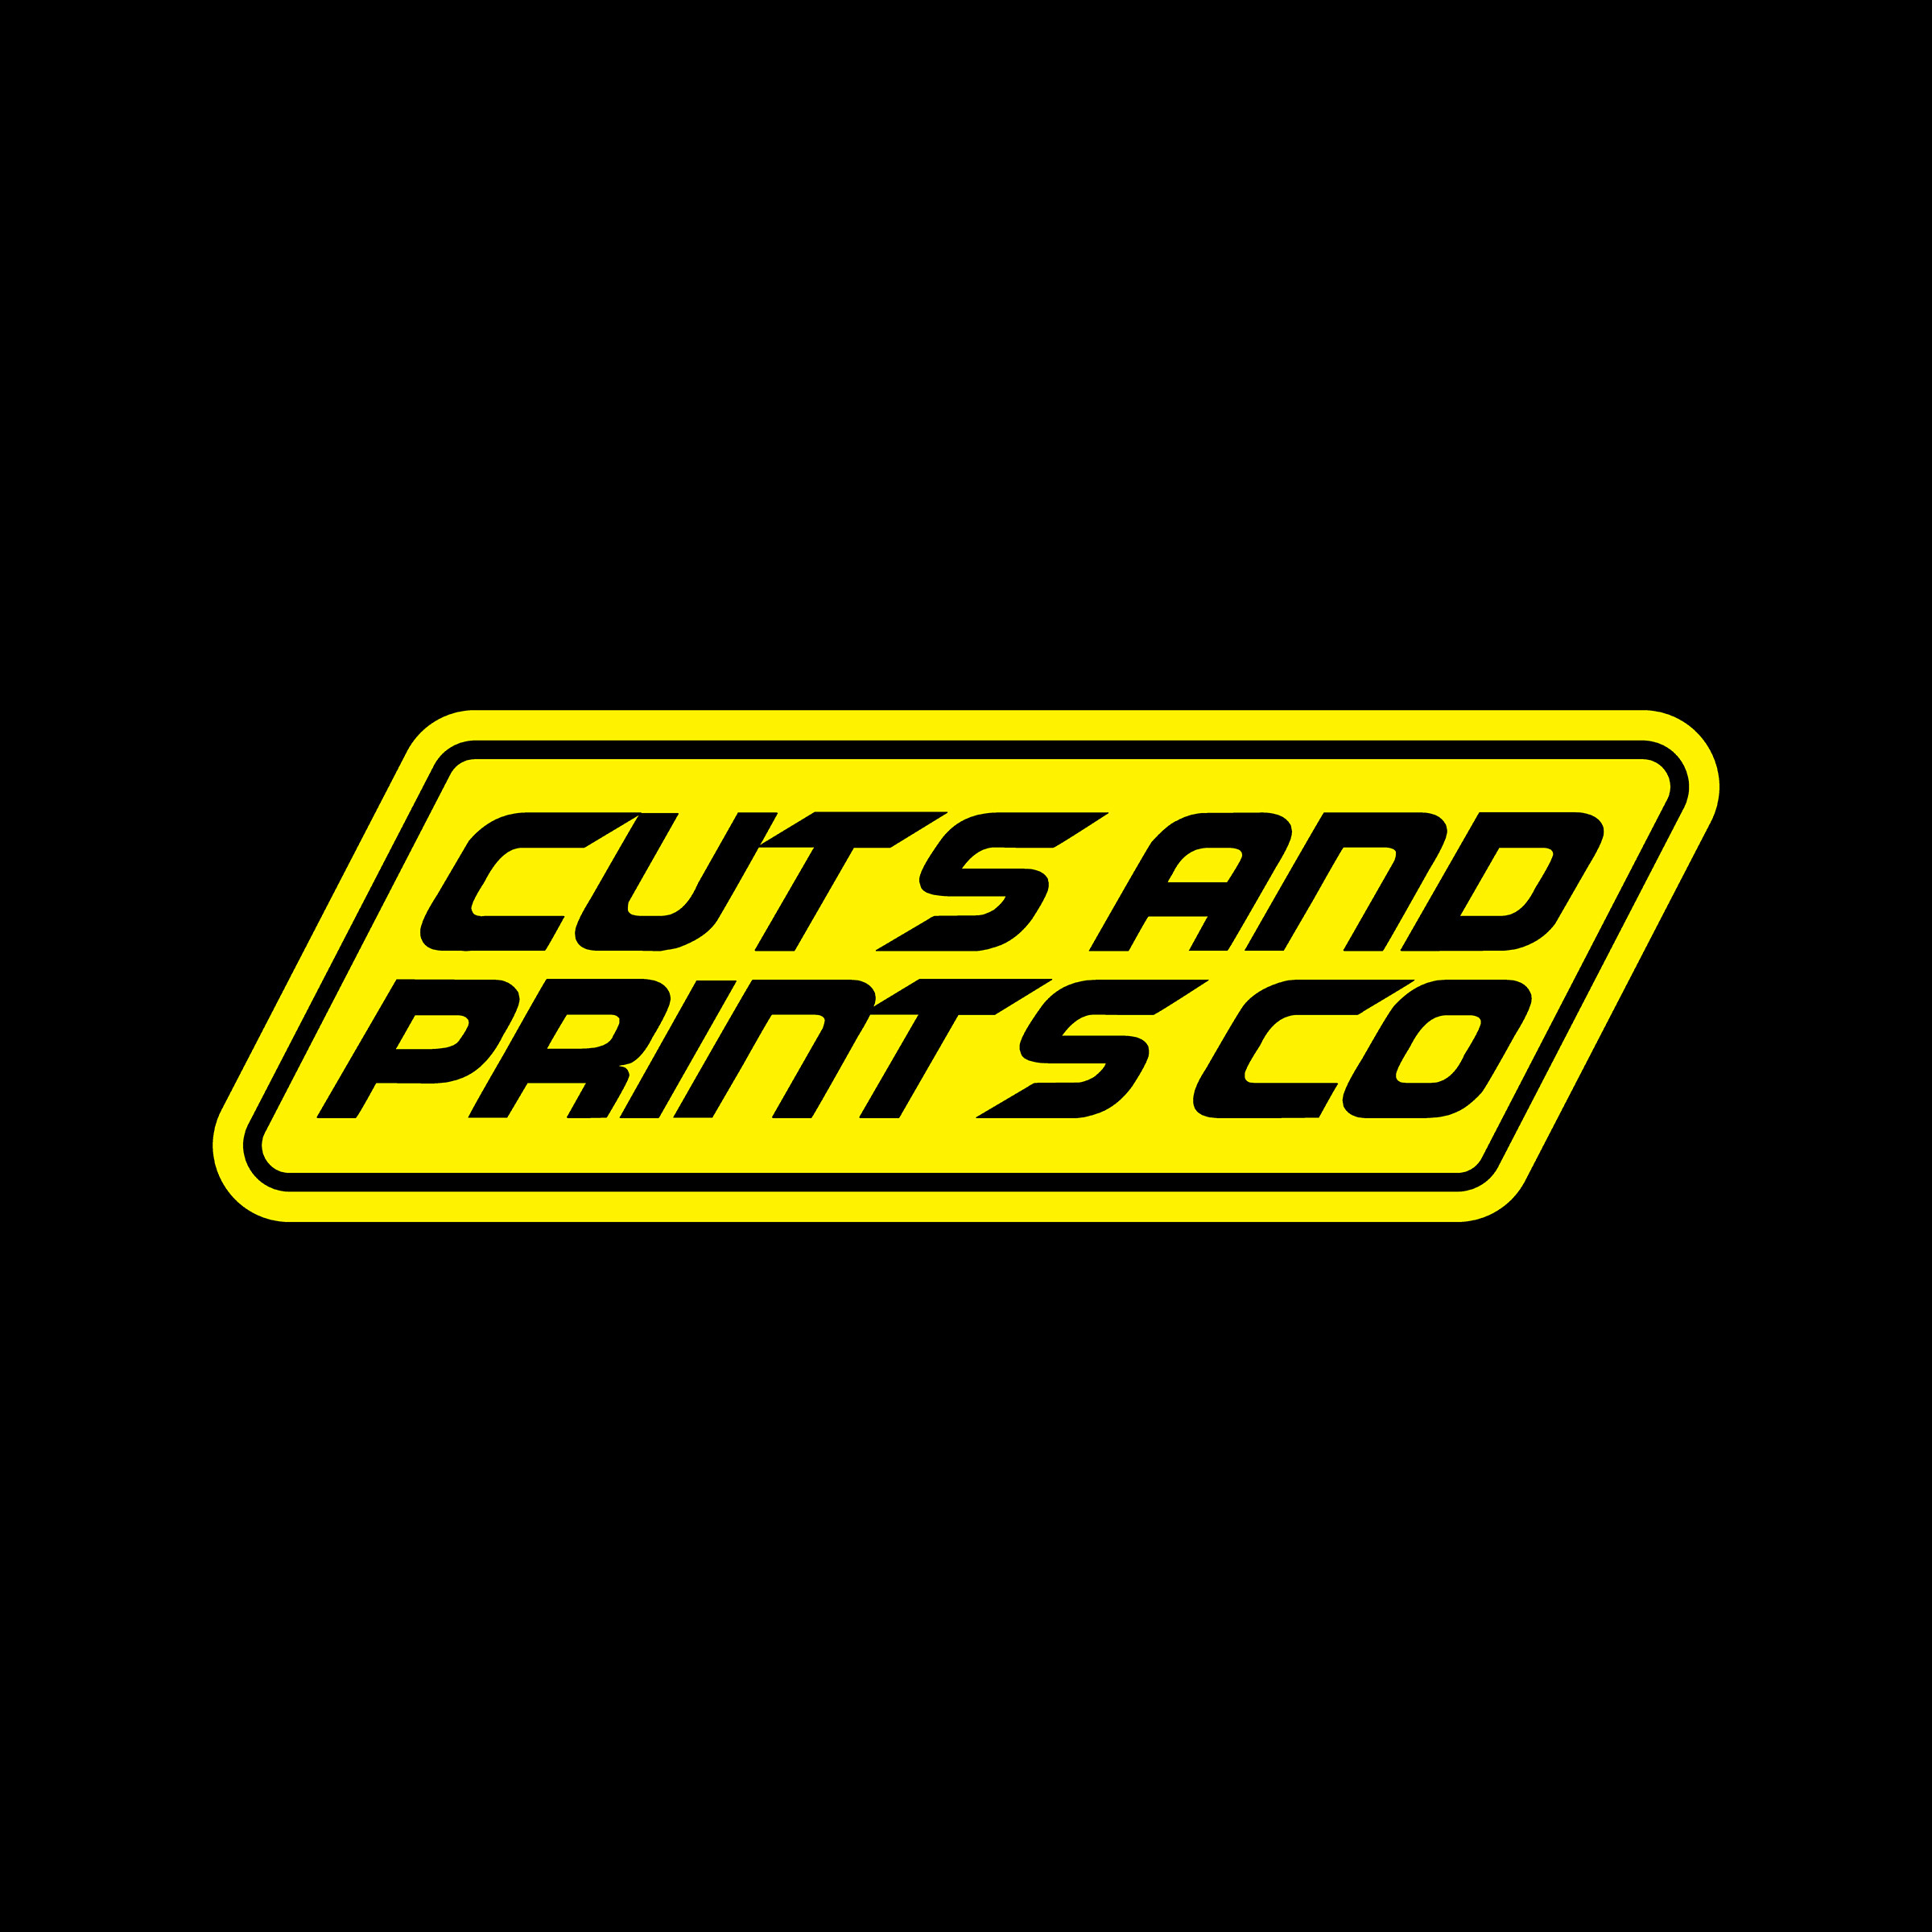 Cuts And Prints Co's profile picture